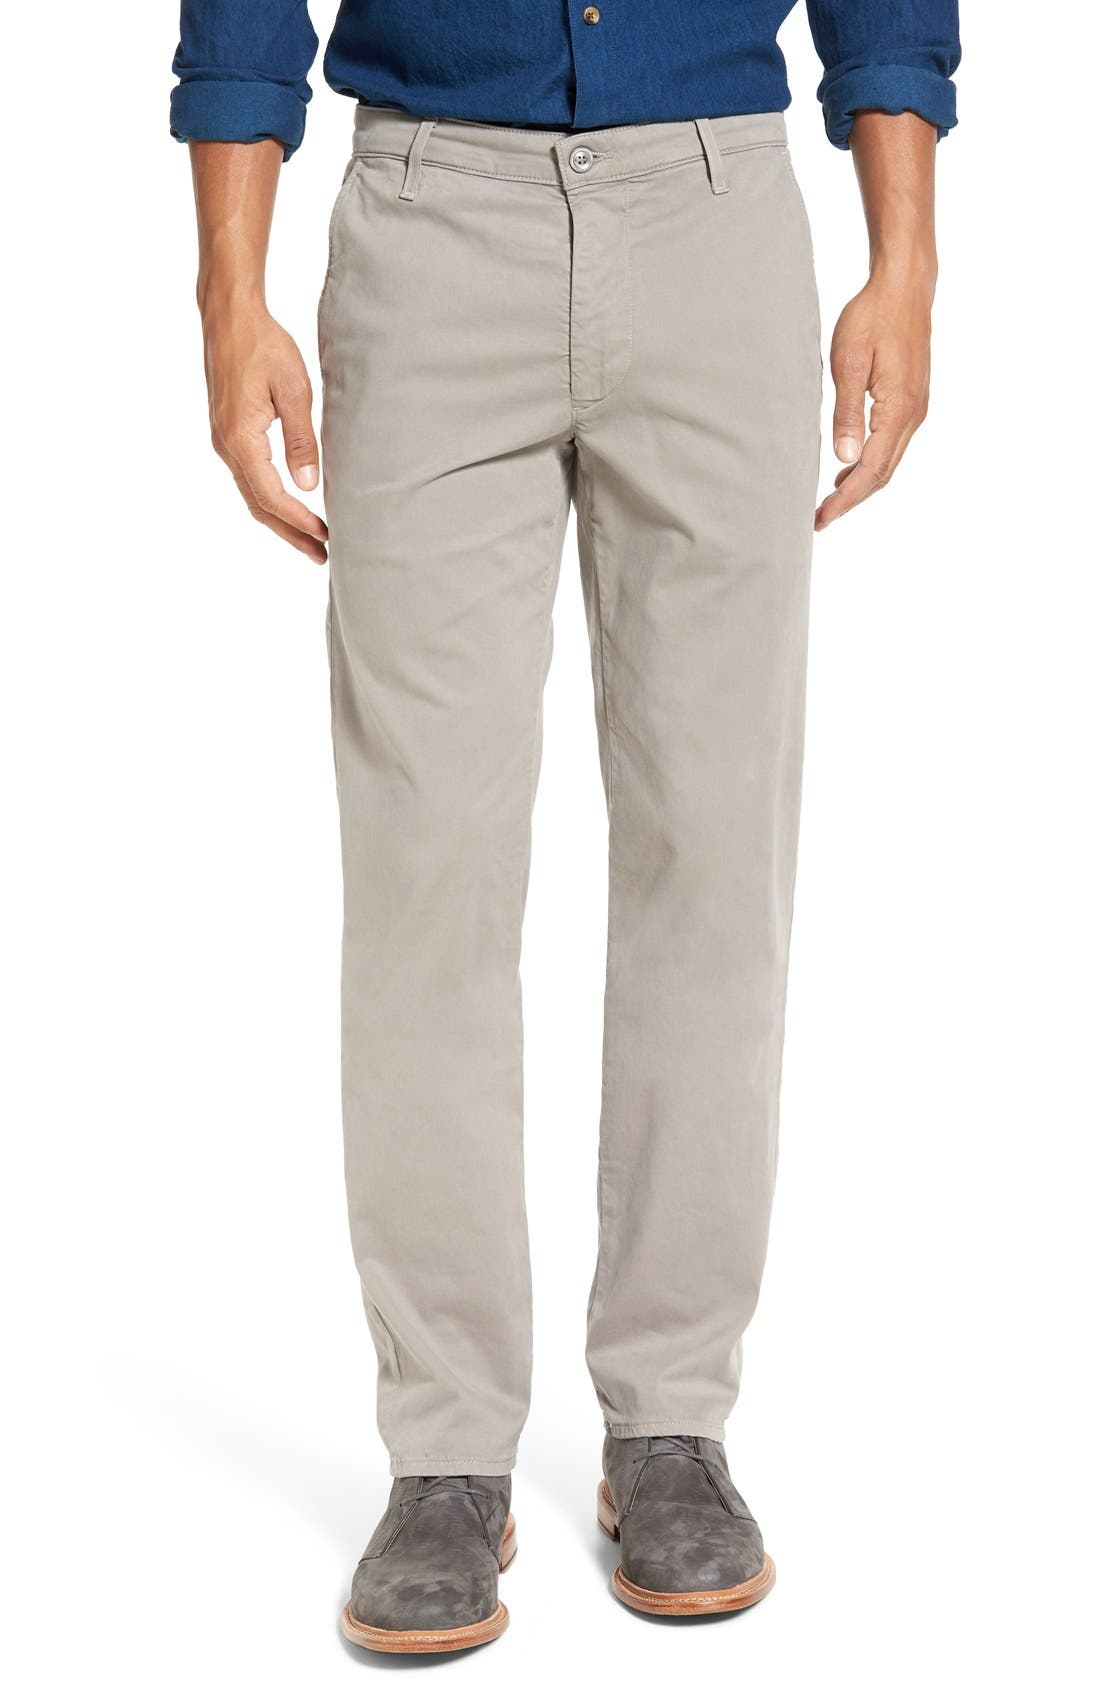 'The Lux' Tailored Straight Leg Chinos,                         Main,                         color, Stucco